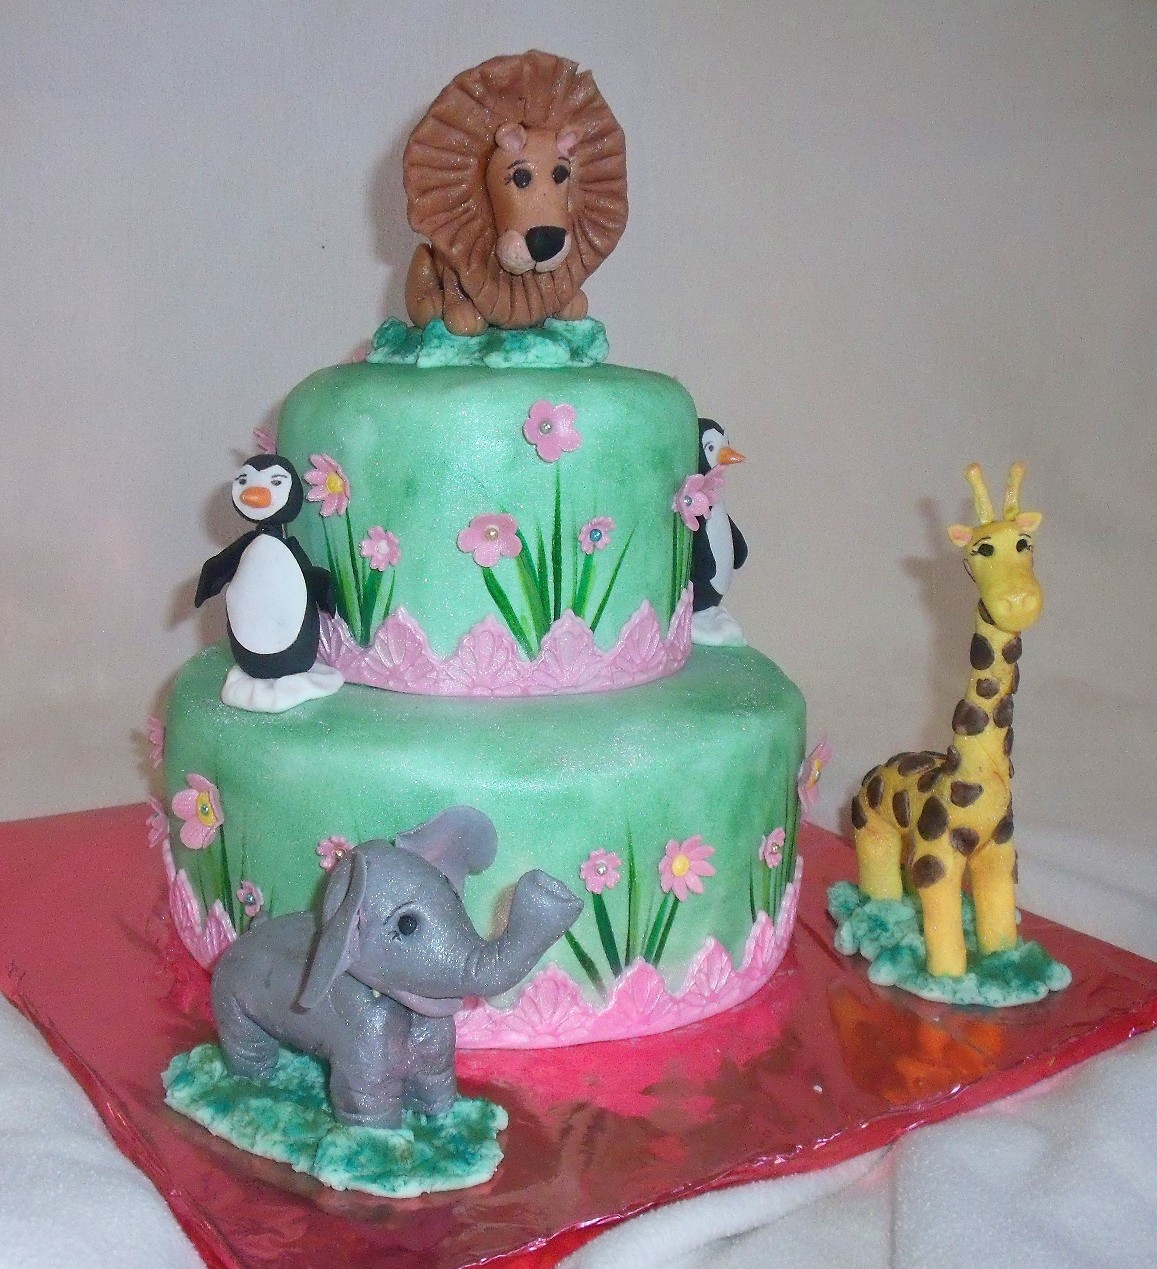 Zoo animals birthday cake with pink flowers and grass side design zoo animals birthday cake with pink flowers and grass side design main view view full size view slideshow izmirmasajfo